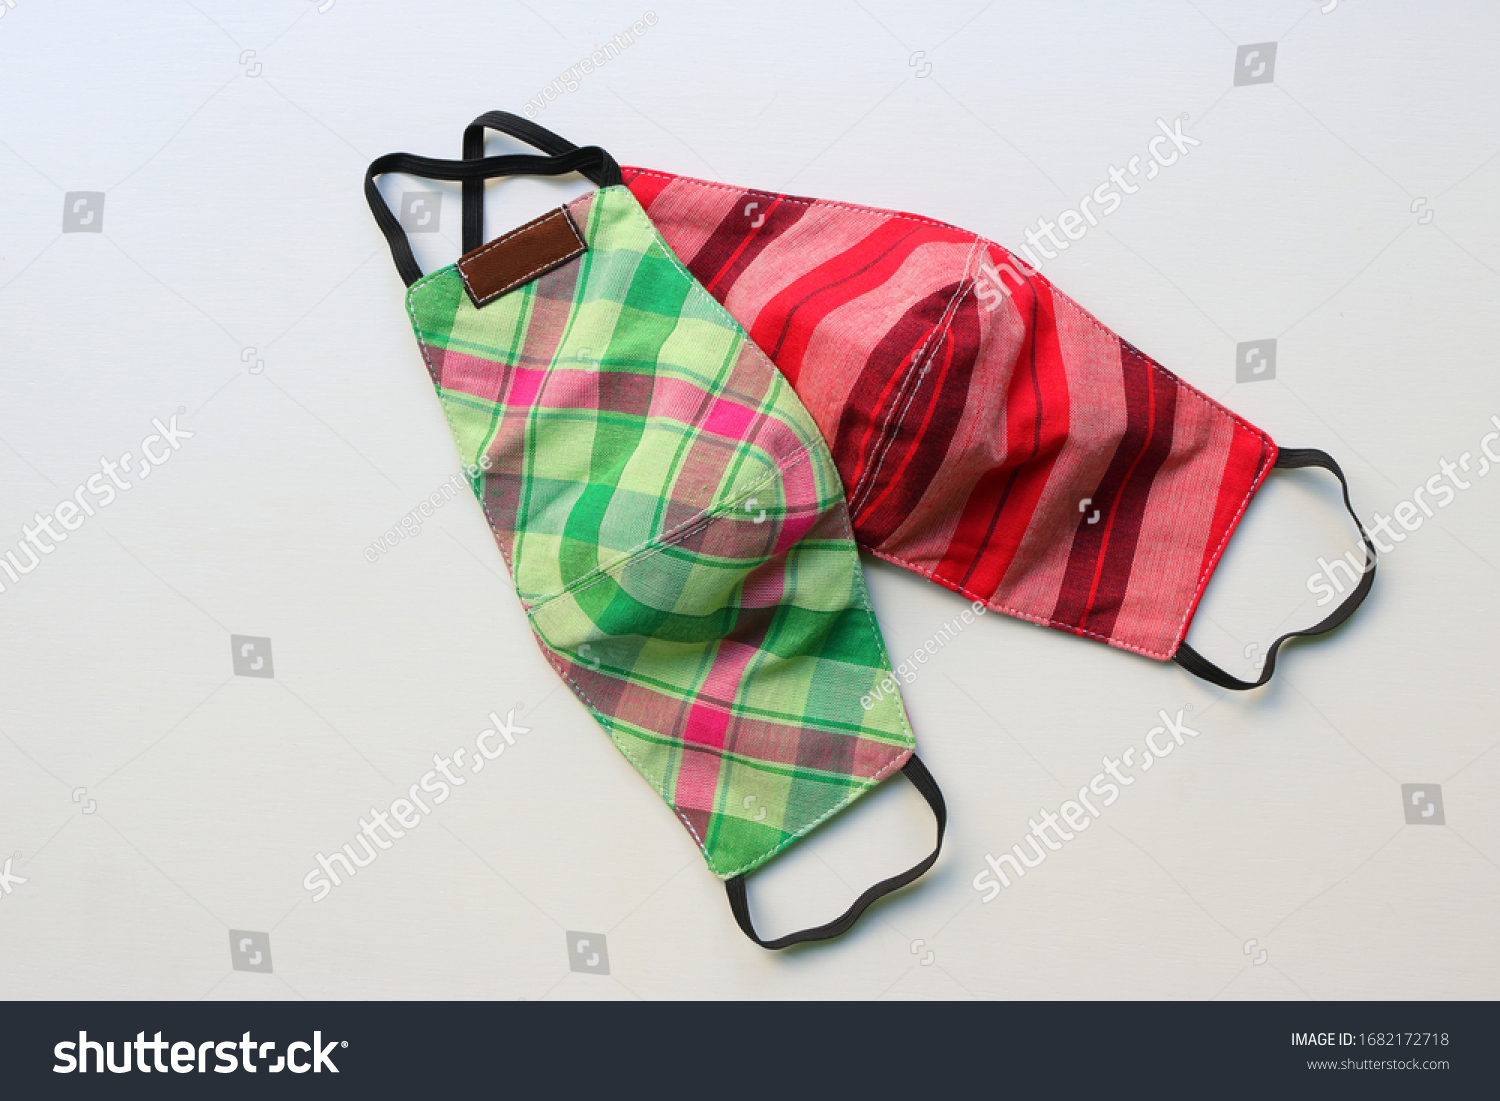 Two handmade face masks made from plaid cloth placed on wooden table, washable and reusable, can be used during shortage of surgical mask due to coronavirus pandemic